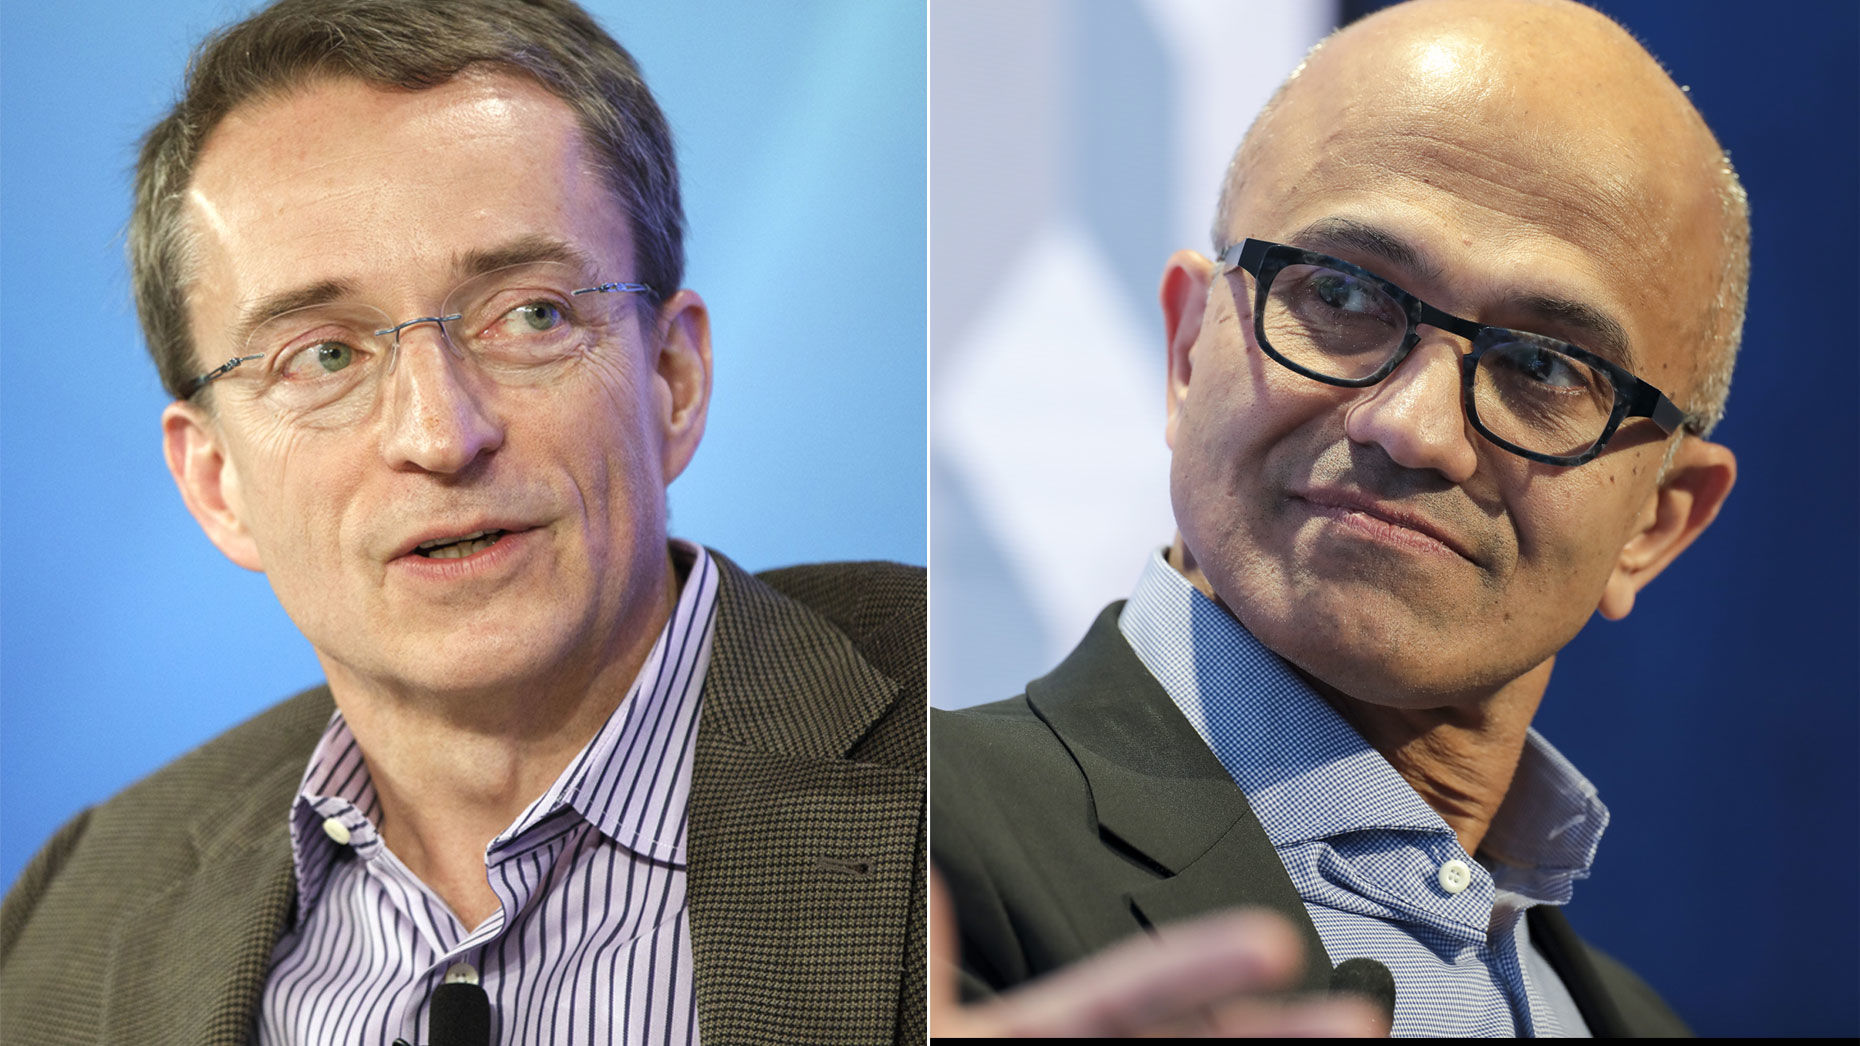 VMware's Pat Gelsinger, left, and Microsoft's Satya Nadella. Photos by Bloomberg.